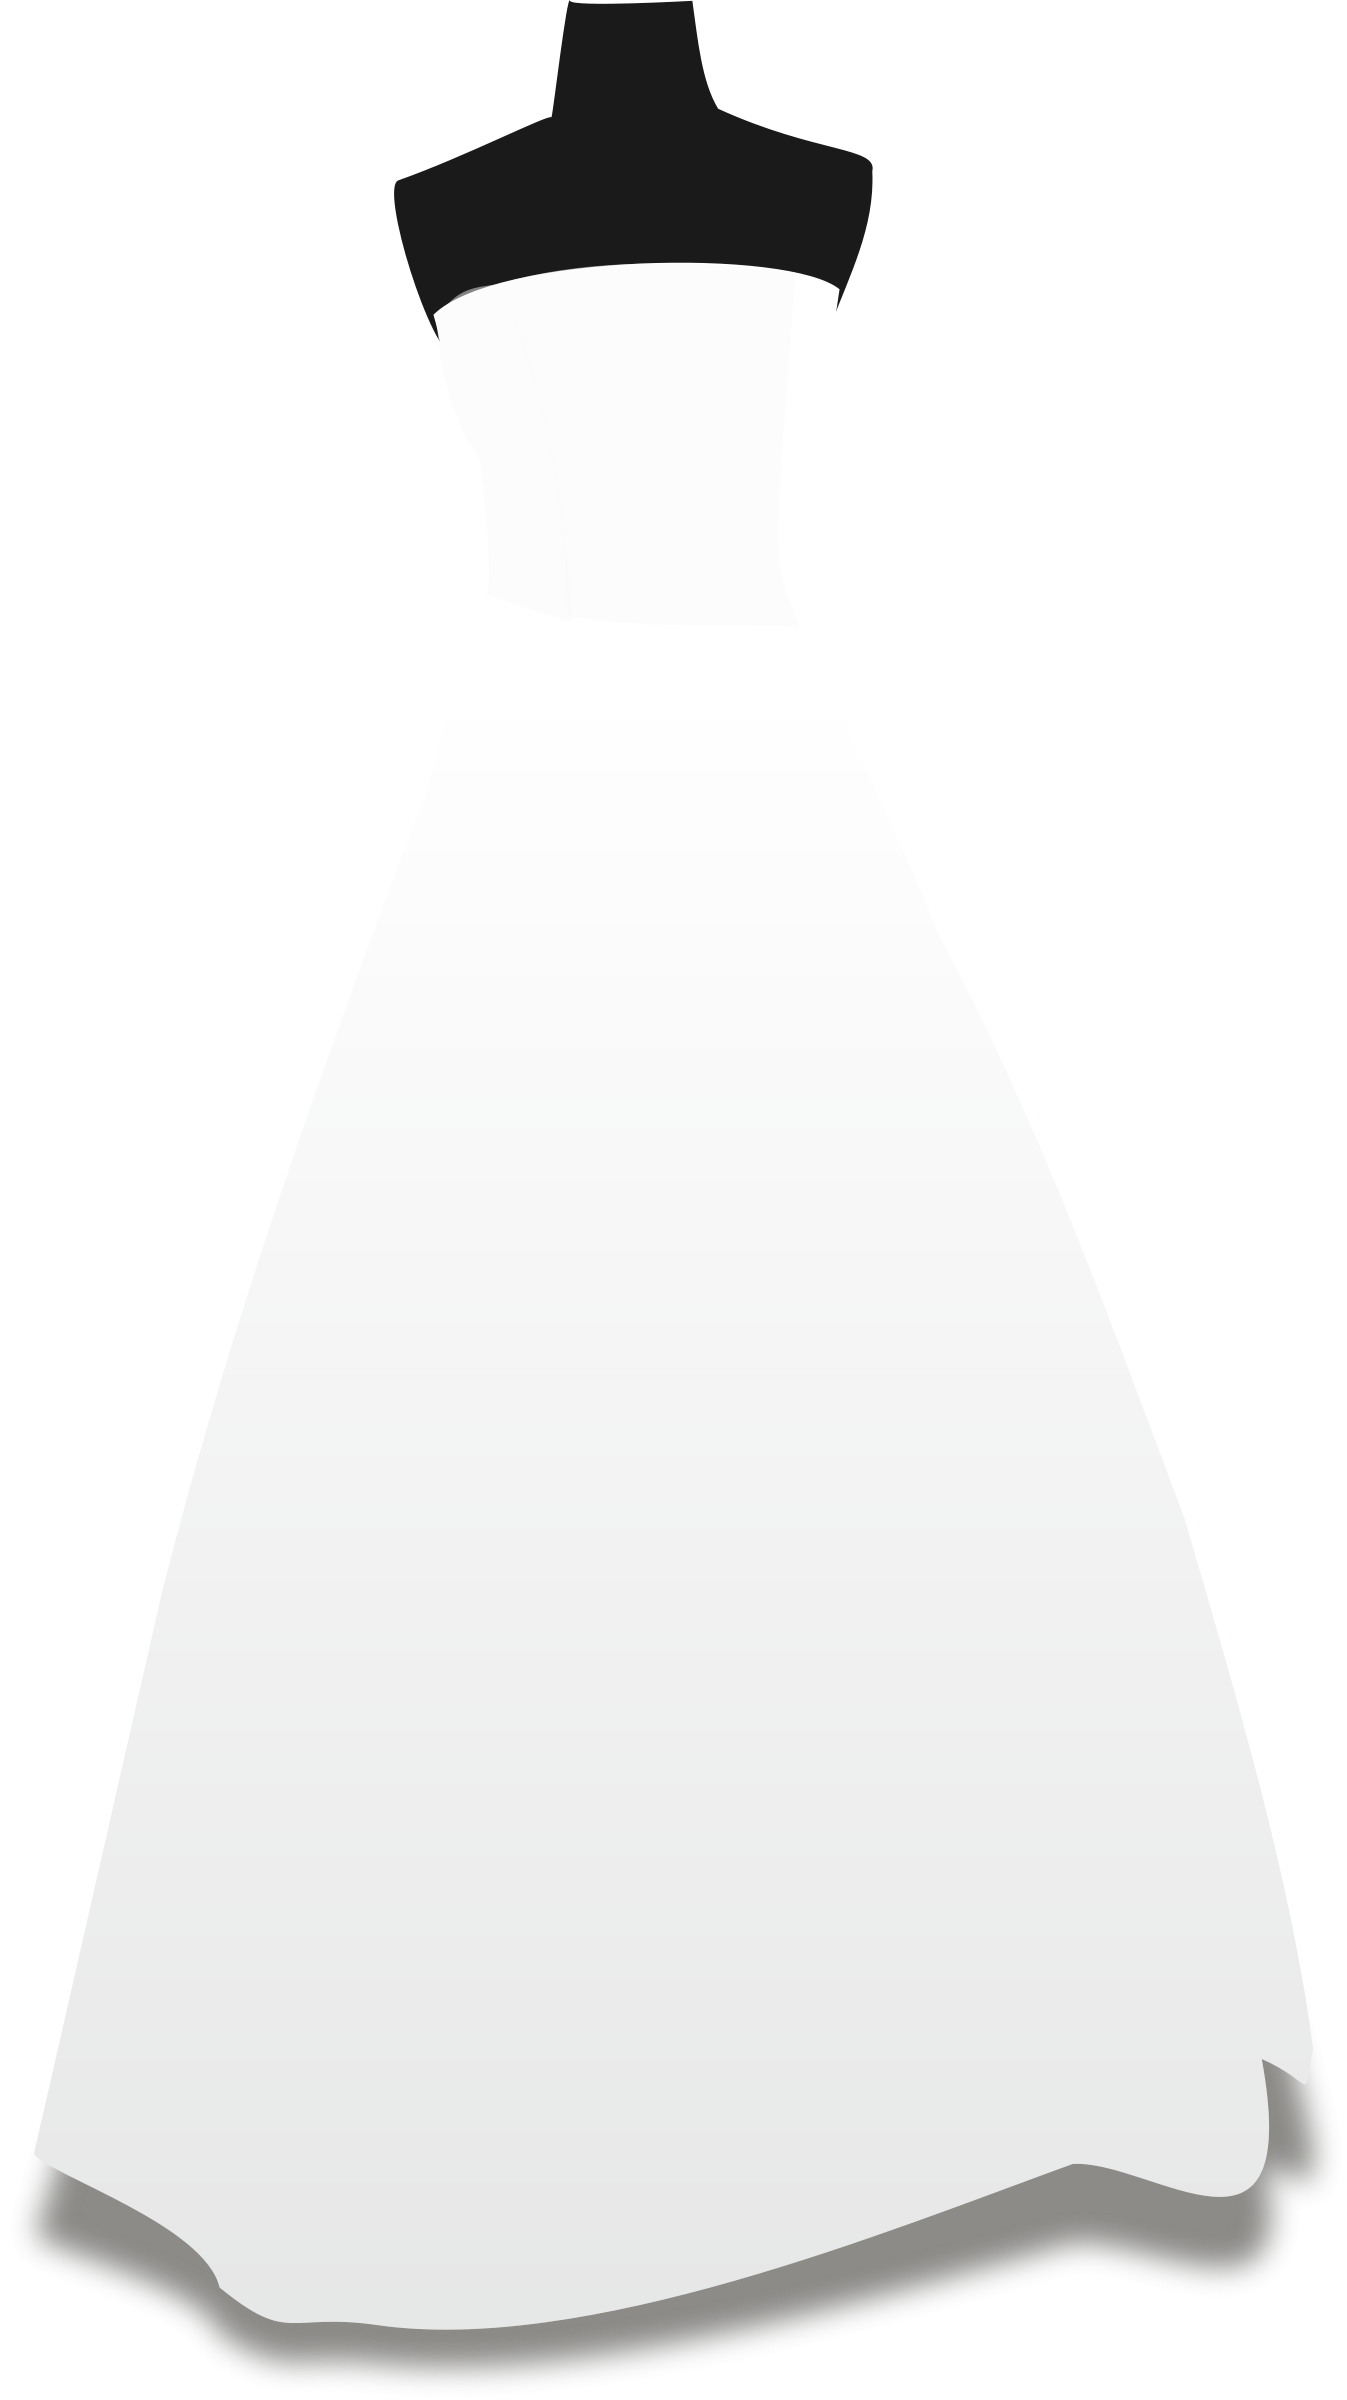 Clipart wedding dress clipart free download Wedding Dress Clipart - Clipart Kid free download